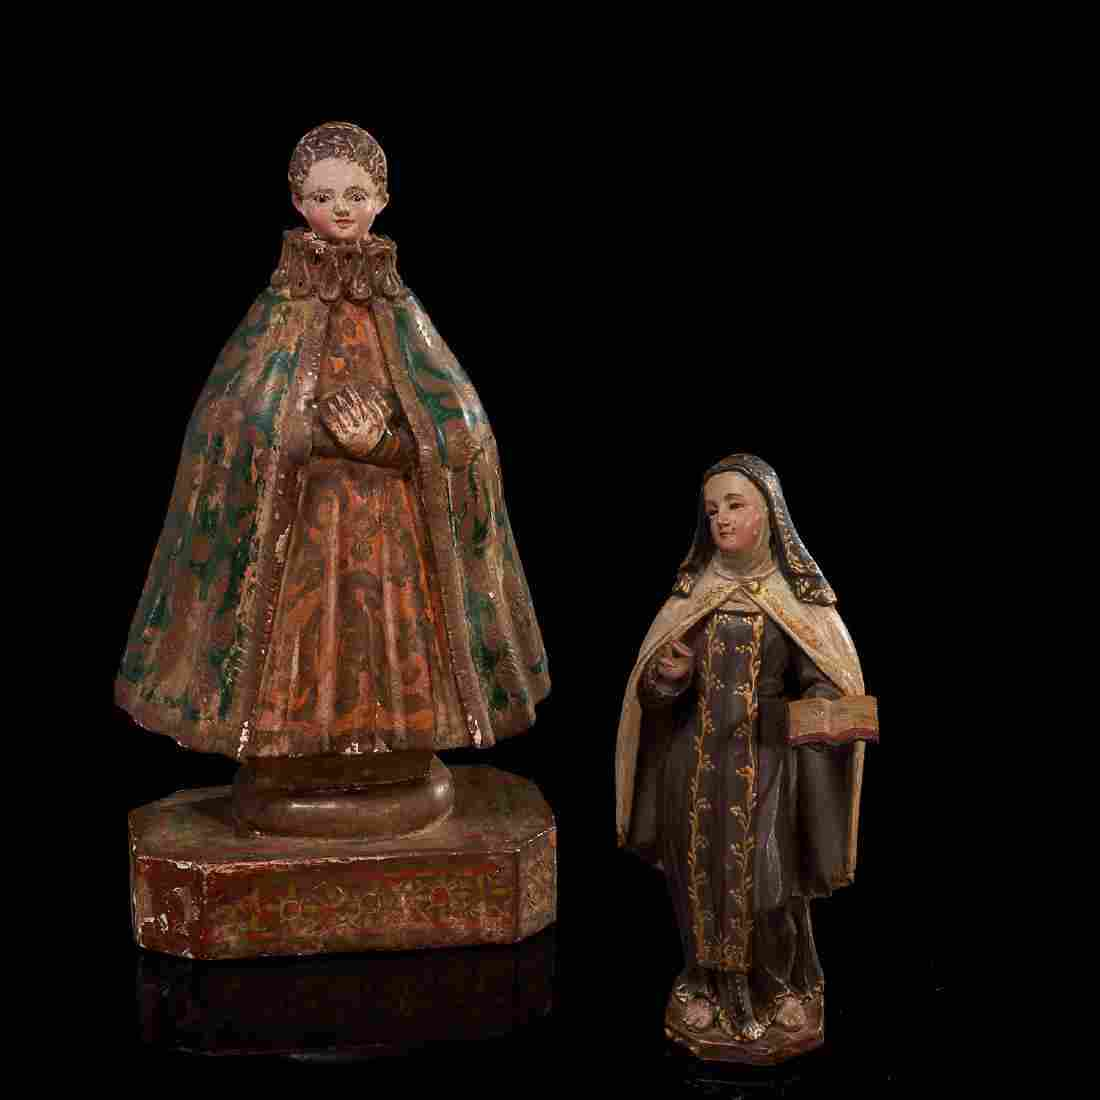 (2) antique Santo figures